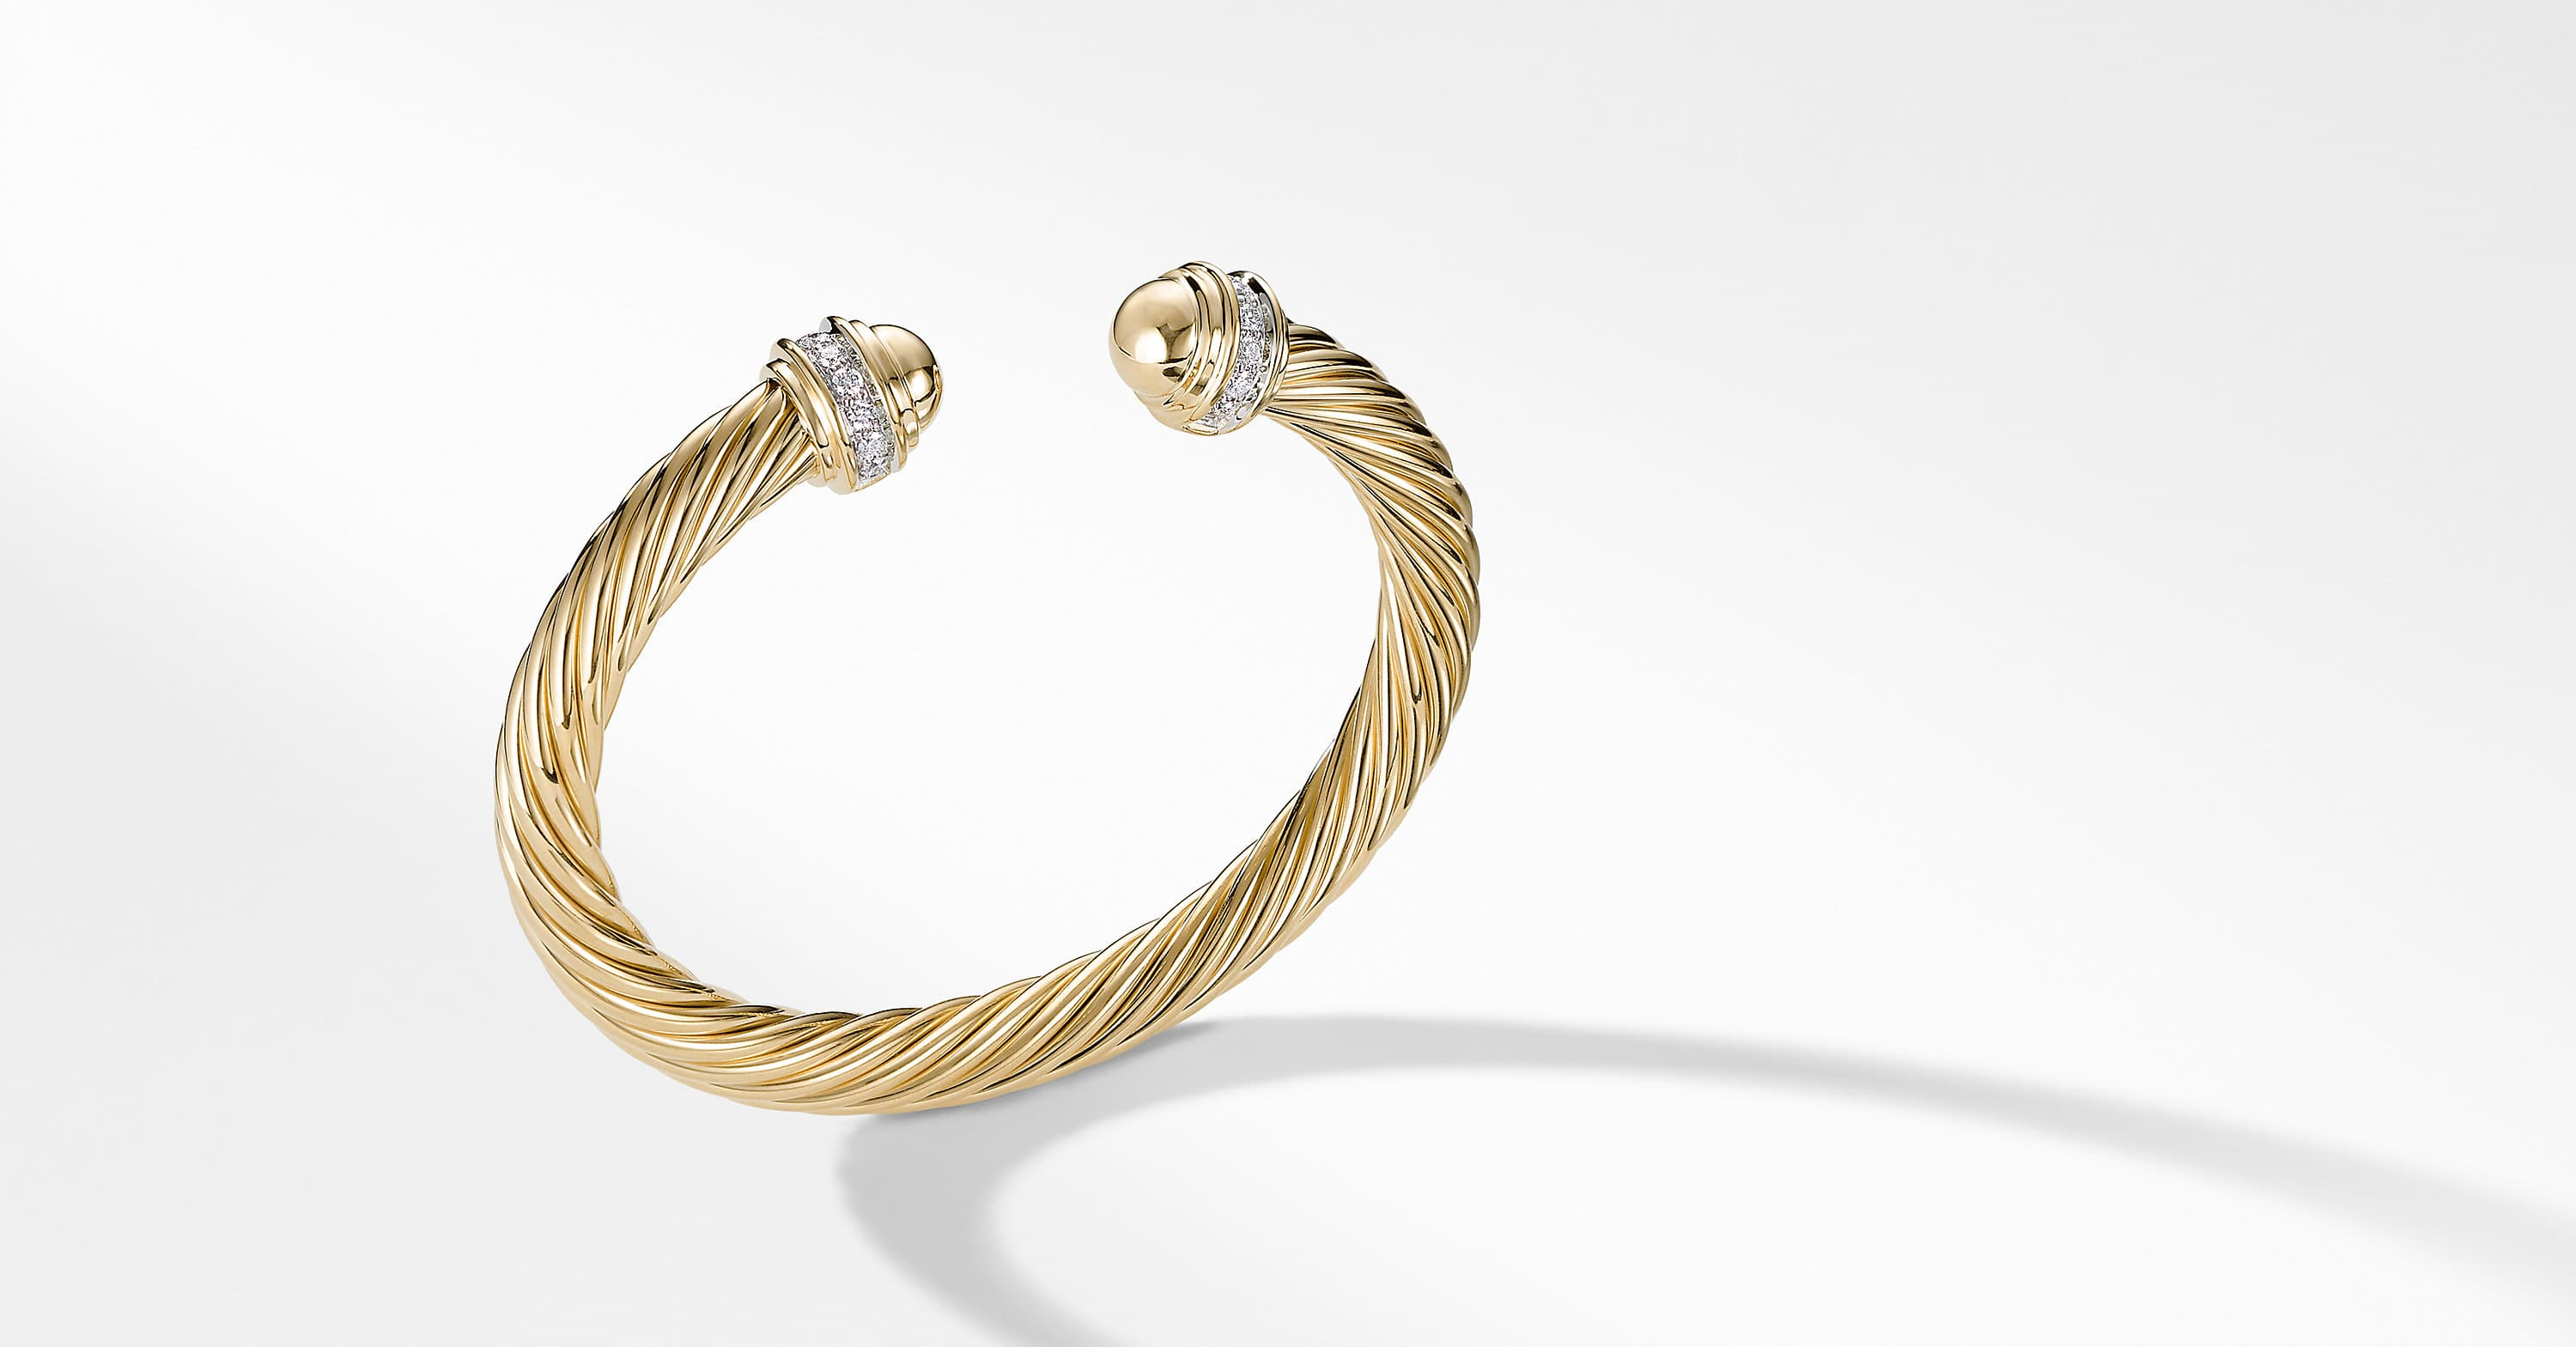 Cable Classics Bracelet with Diamonds in 18K Gold, 7mm